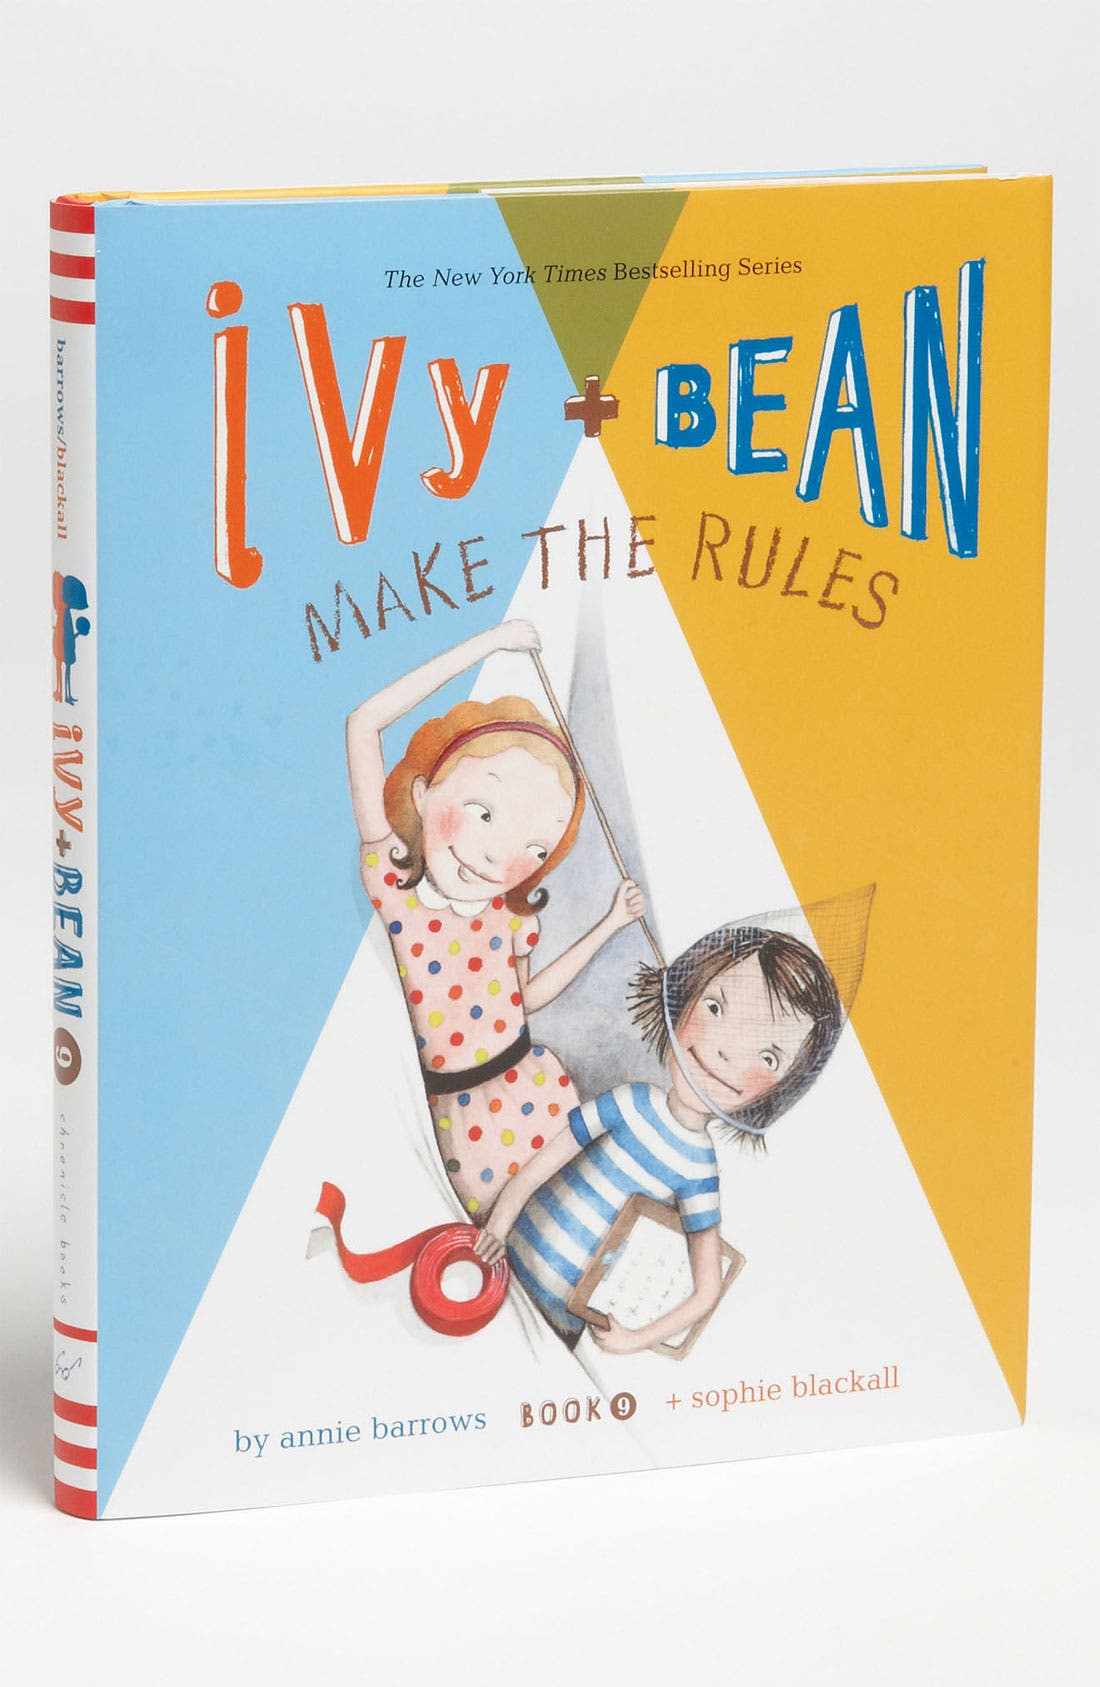 Alternate Image 1 Selected - Annie Barrows & Sophie Blackall 'Ivy + Bean: Make the Rules' Book